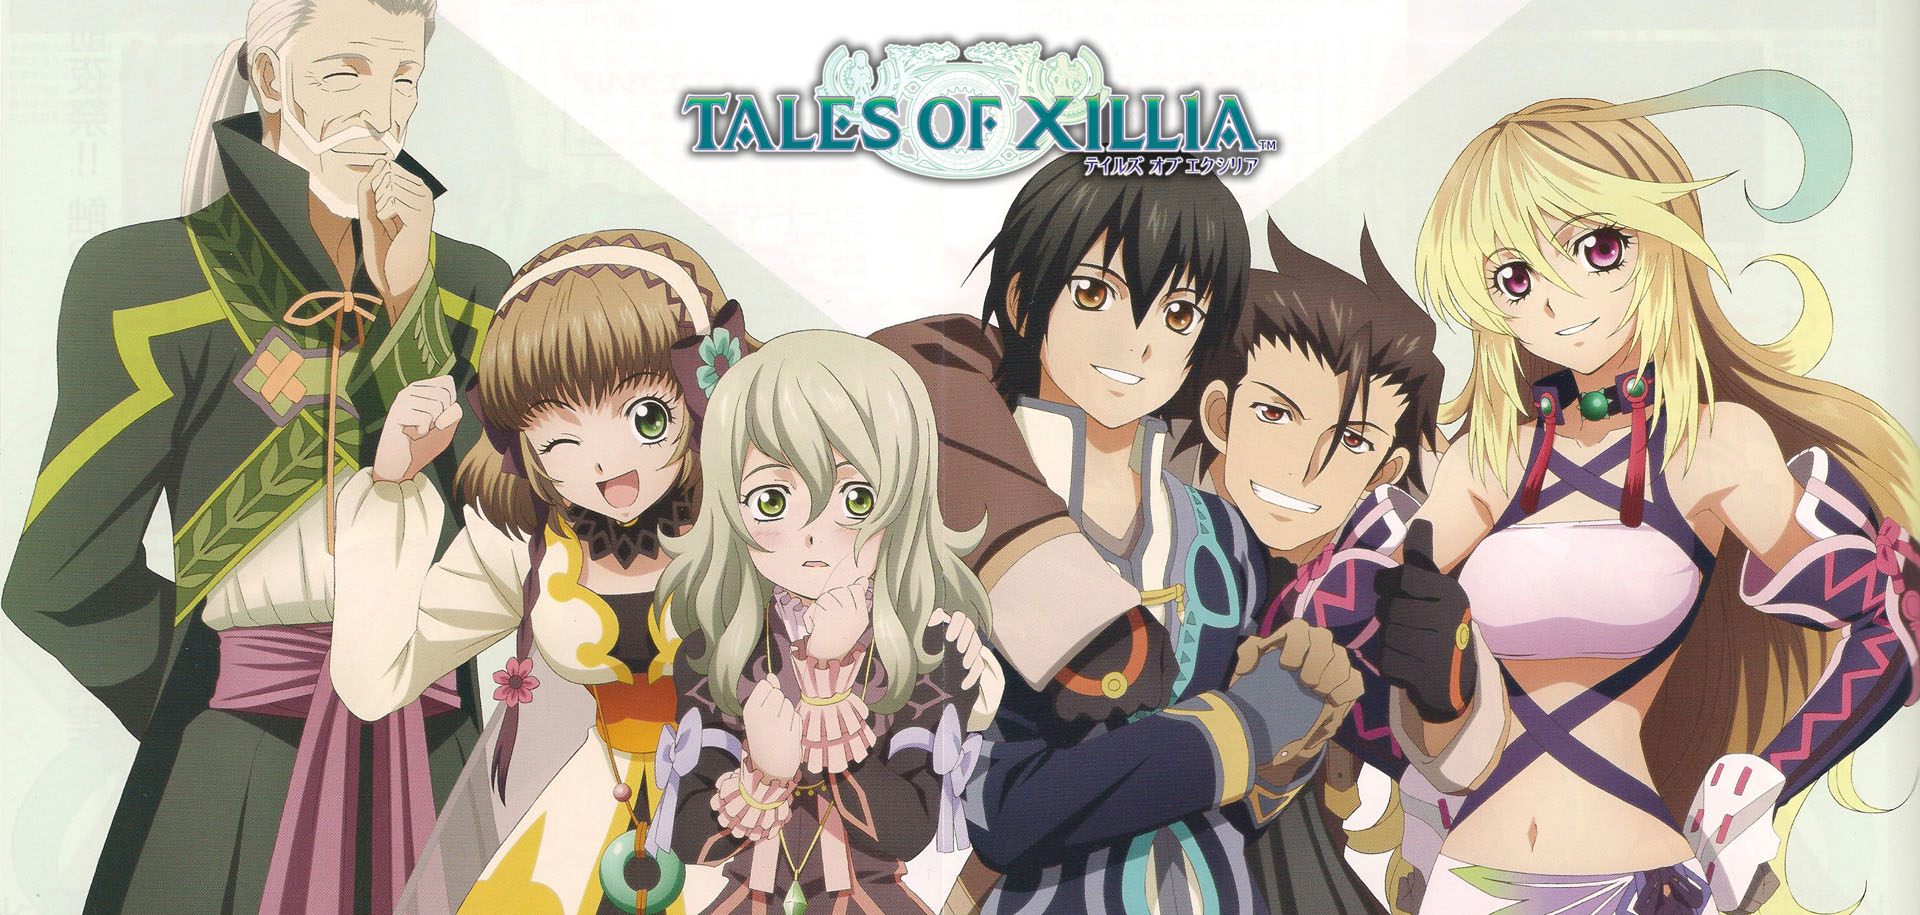 Tales of Xillia art